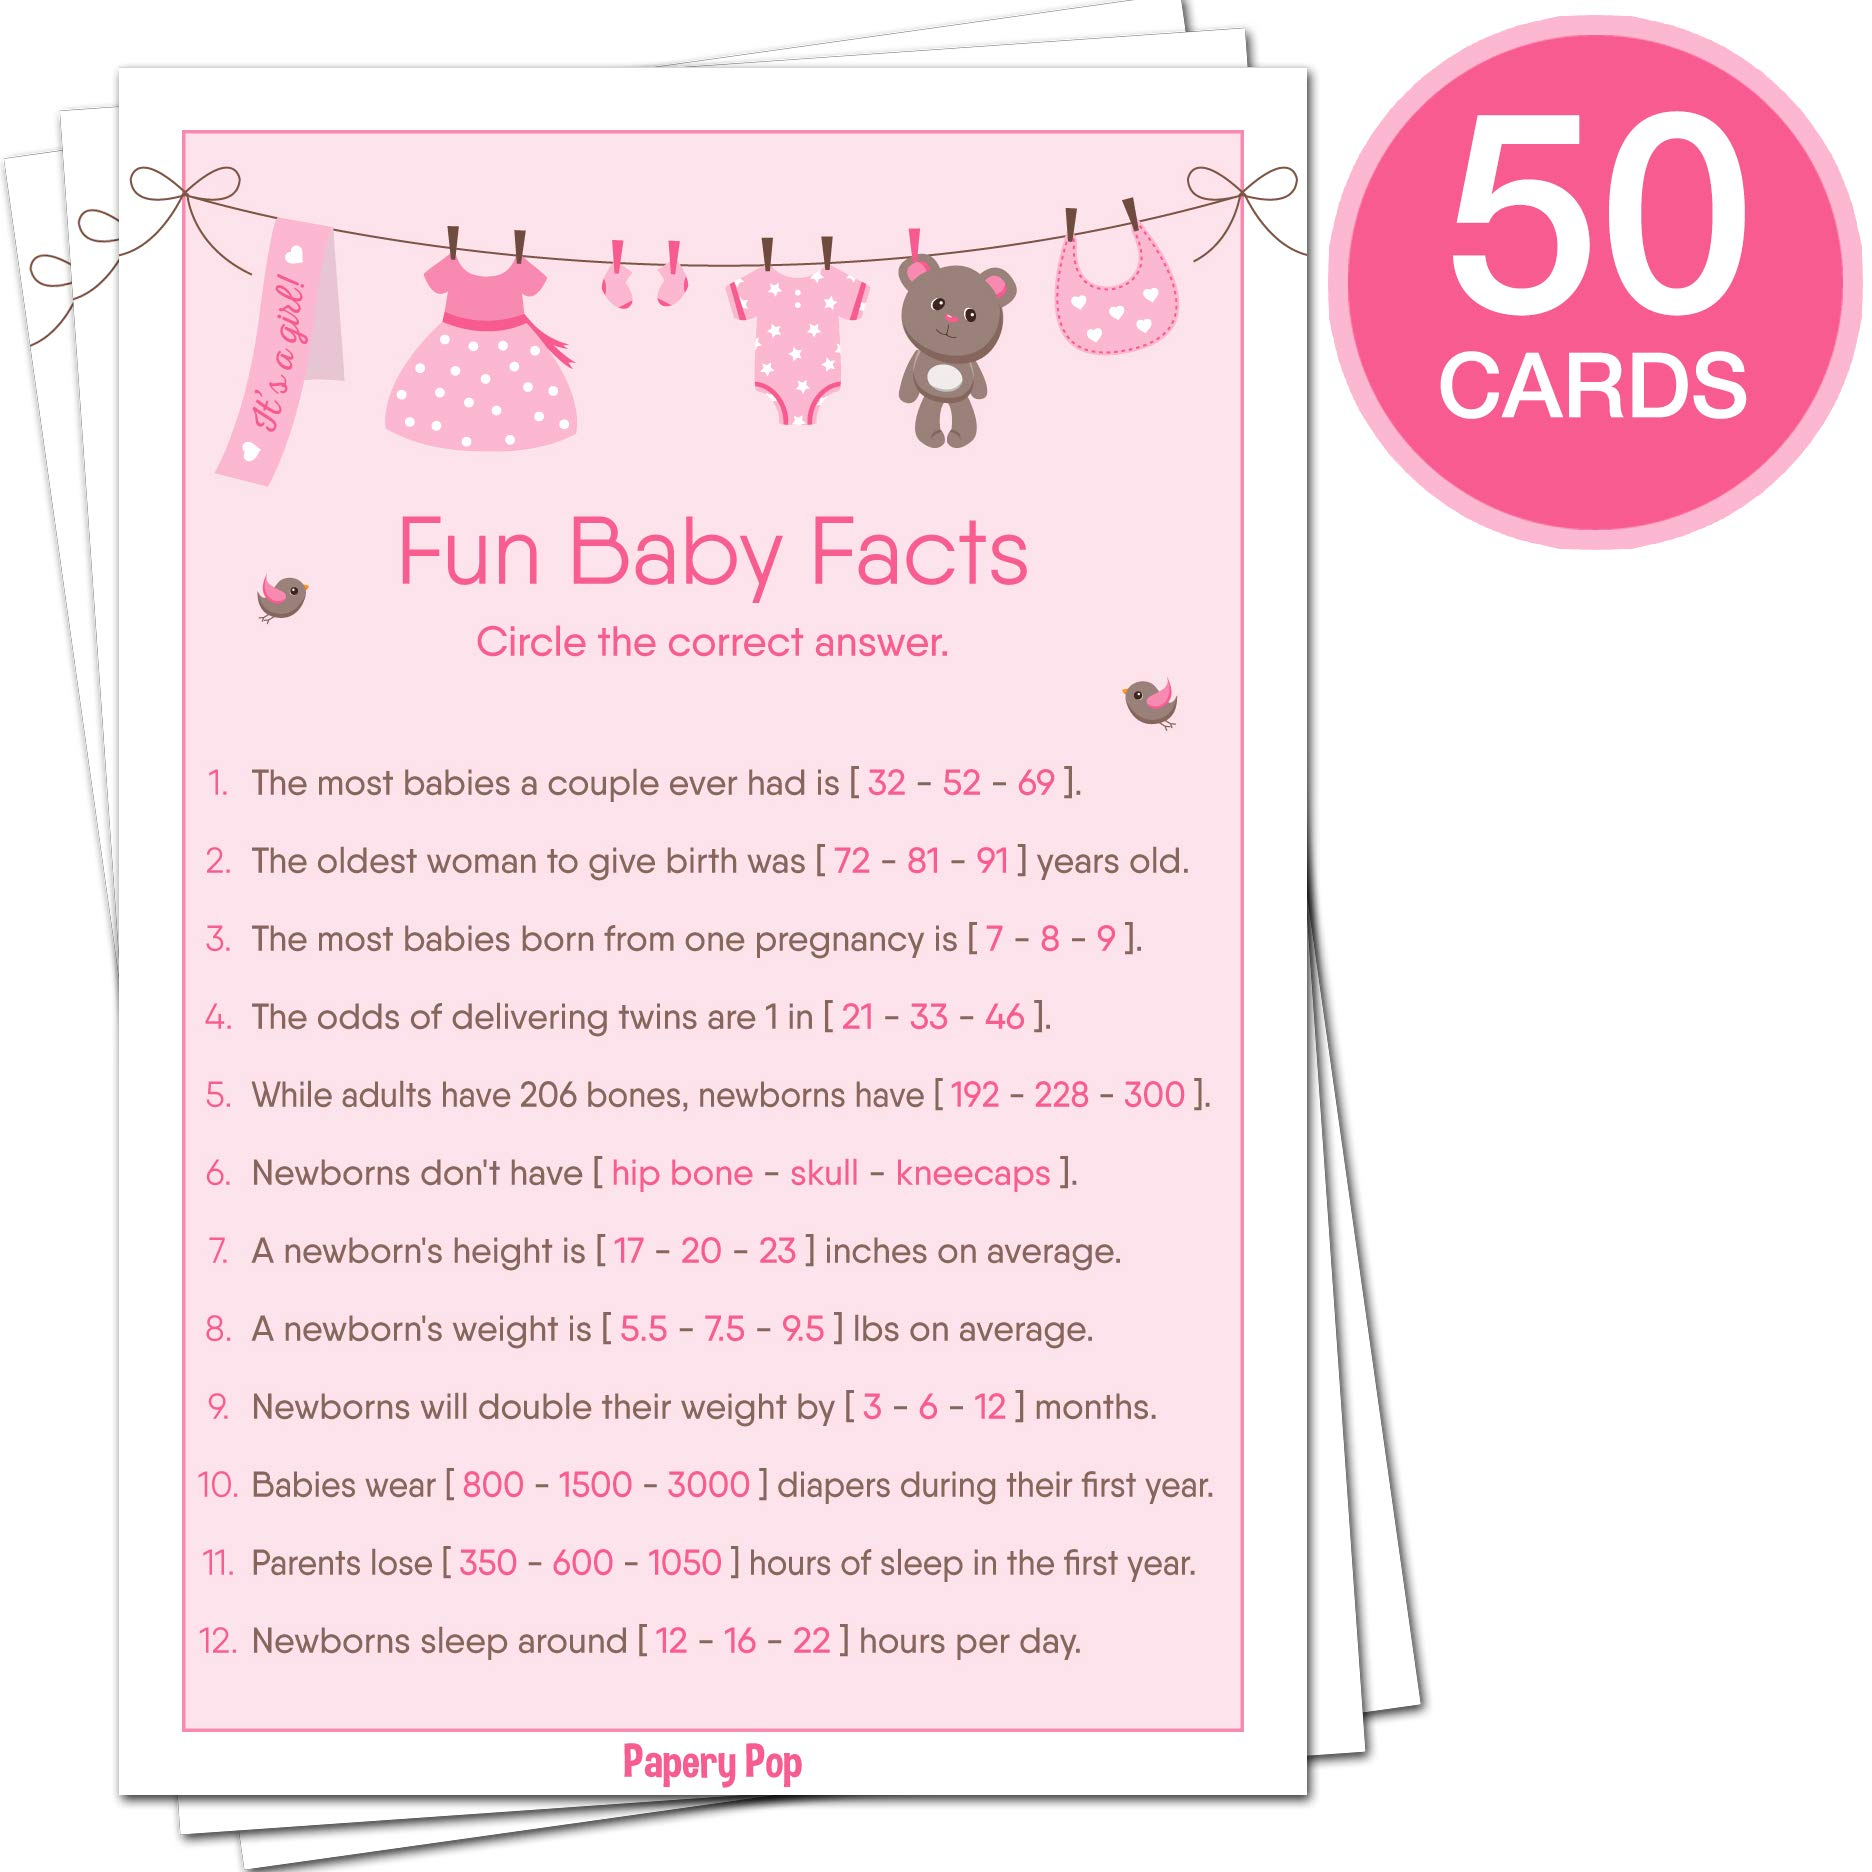 Baby Shower Games for Girls - Set of 5 Activities - (50 Cards Each, 250 Total) - Baby Shower Supplies by Papery Pop (Image #3)